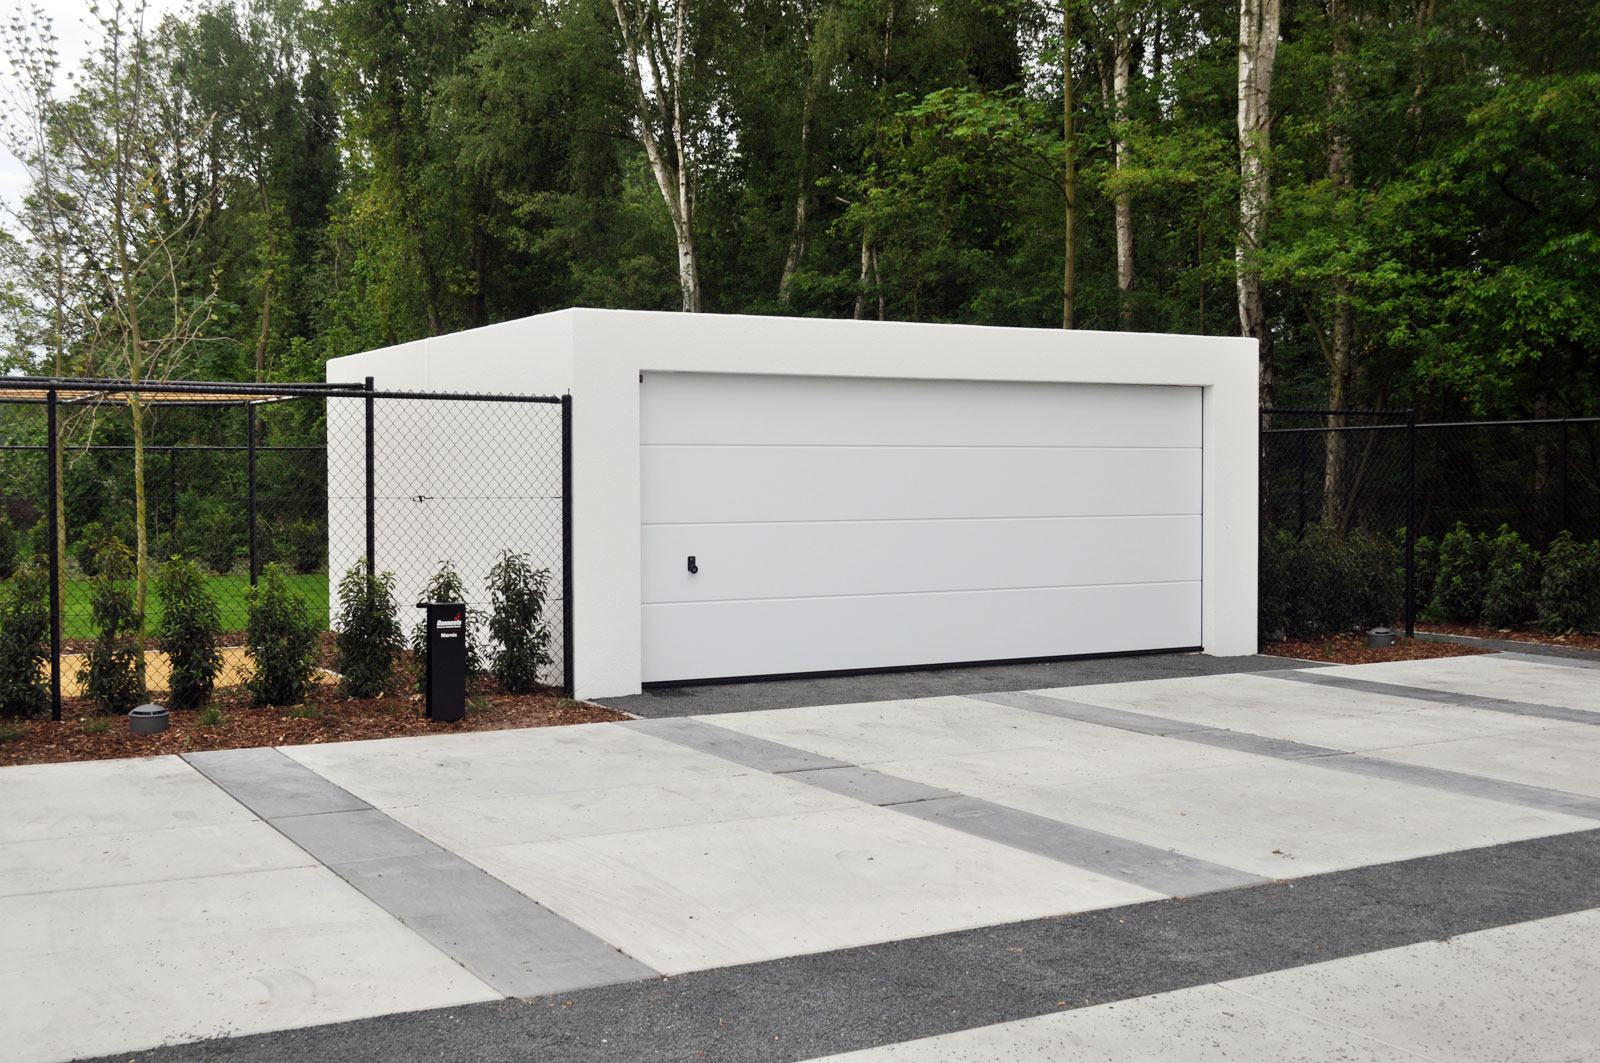 Garages pr fabriqu s en b ton arm betonal - Construction garage prefabrique beton ...